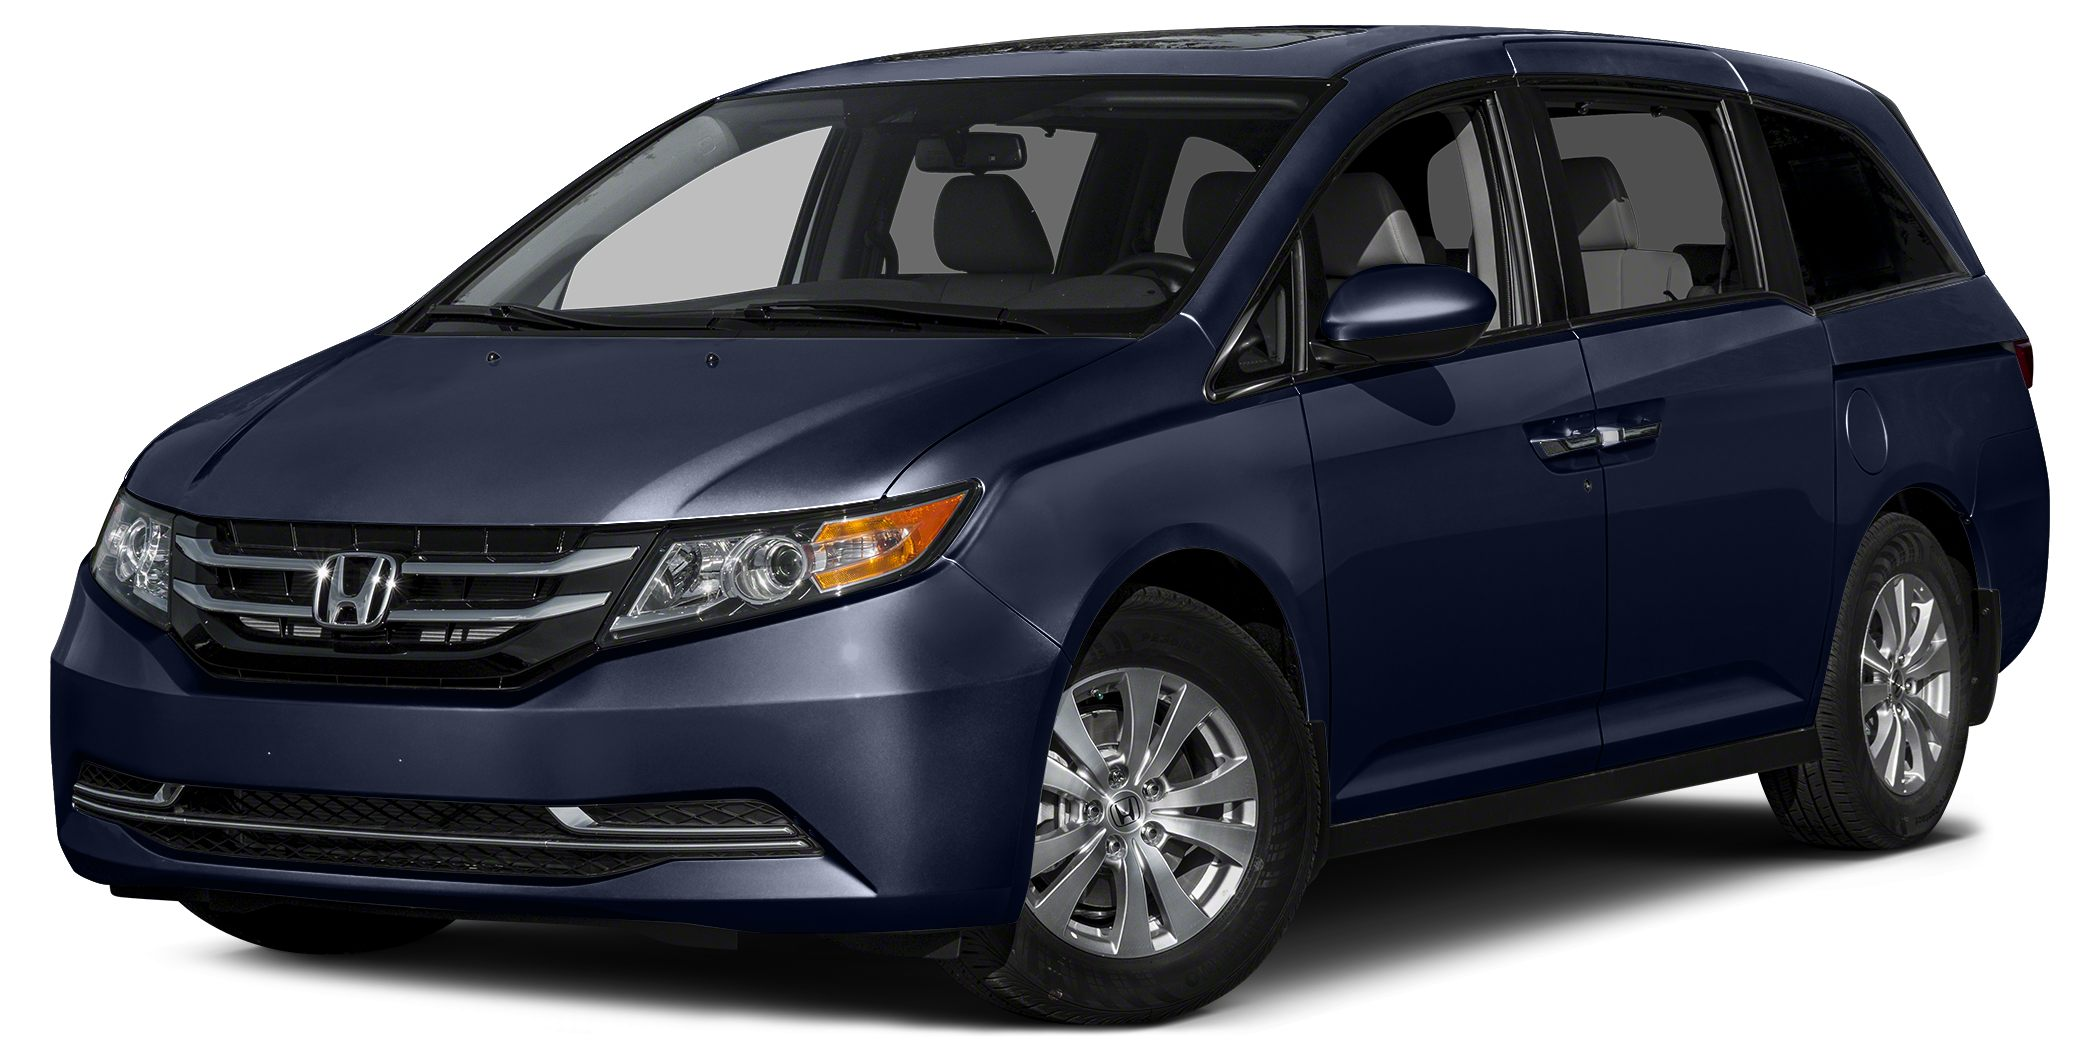 2014 Honda Odyssey EX-L Easily practice safe driving with anti-lock brakes a backup camera dual